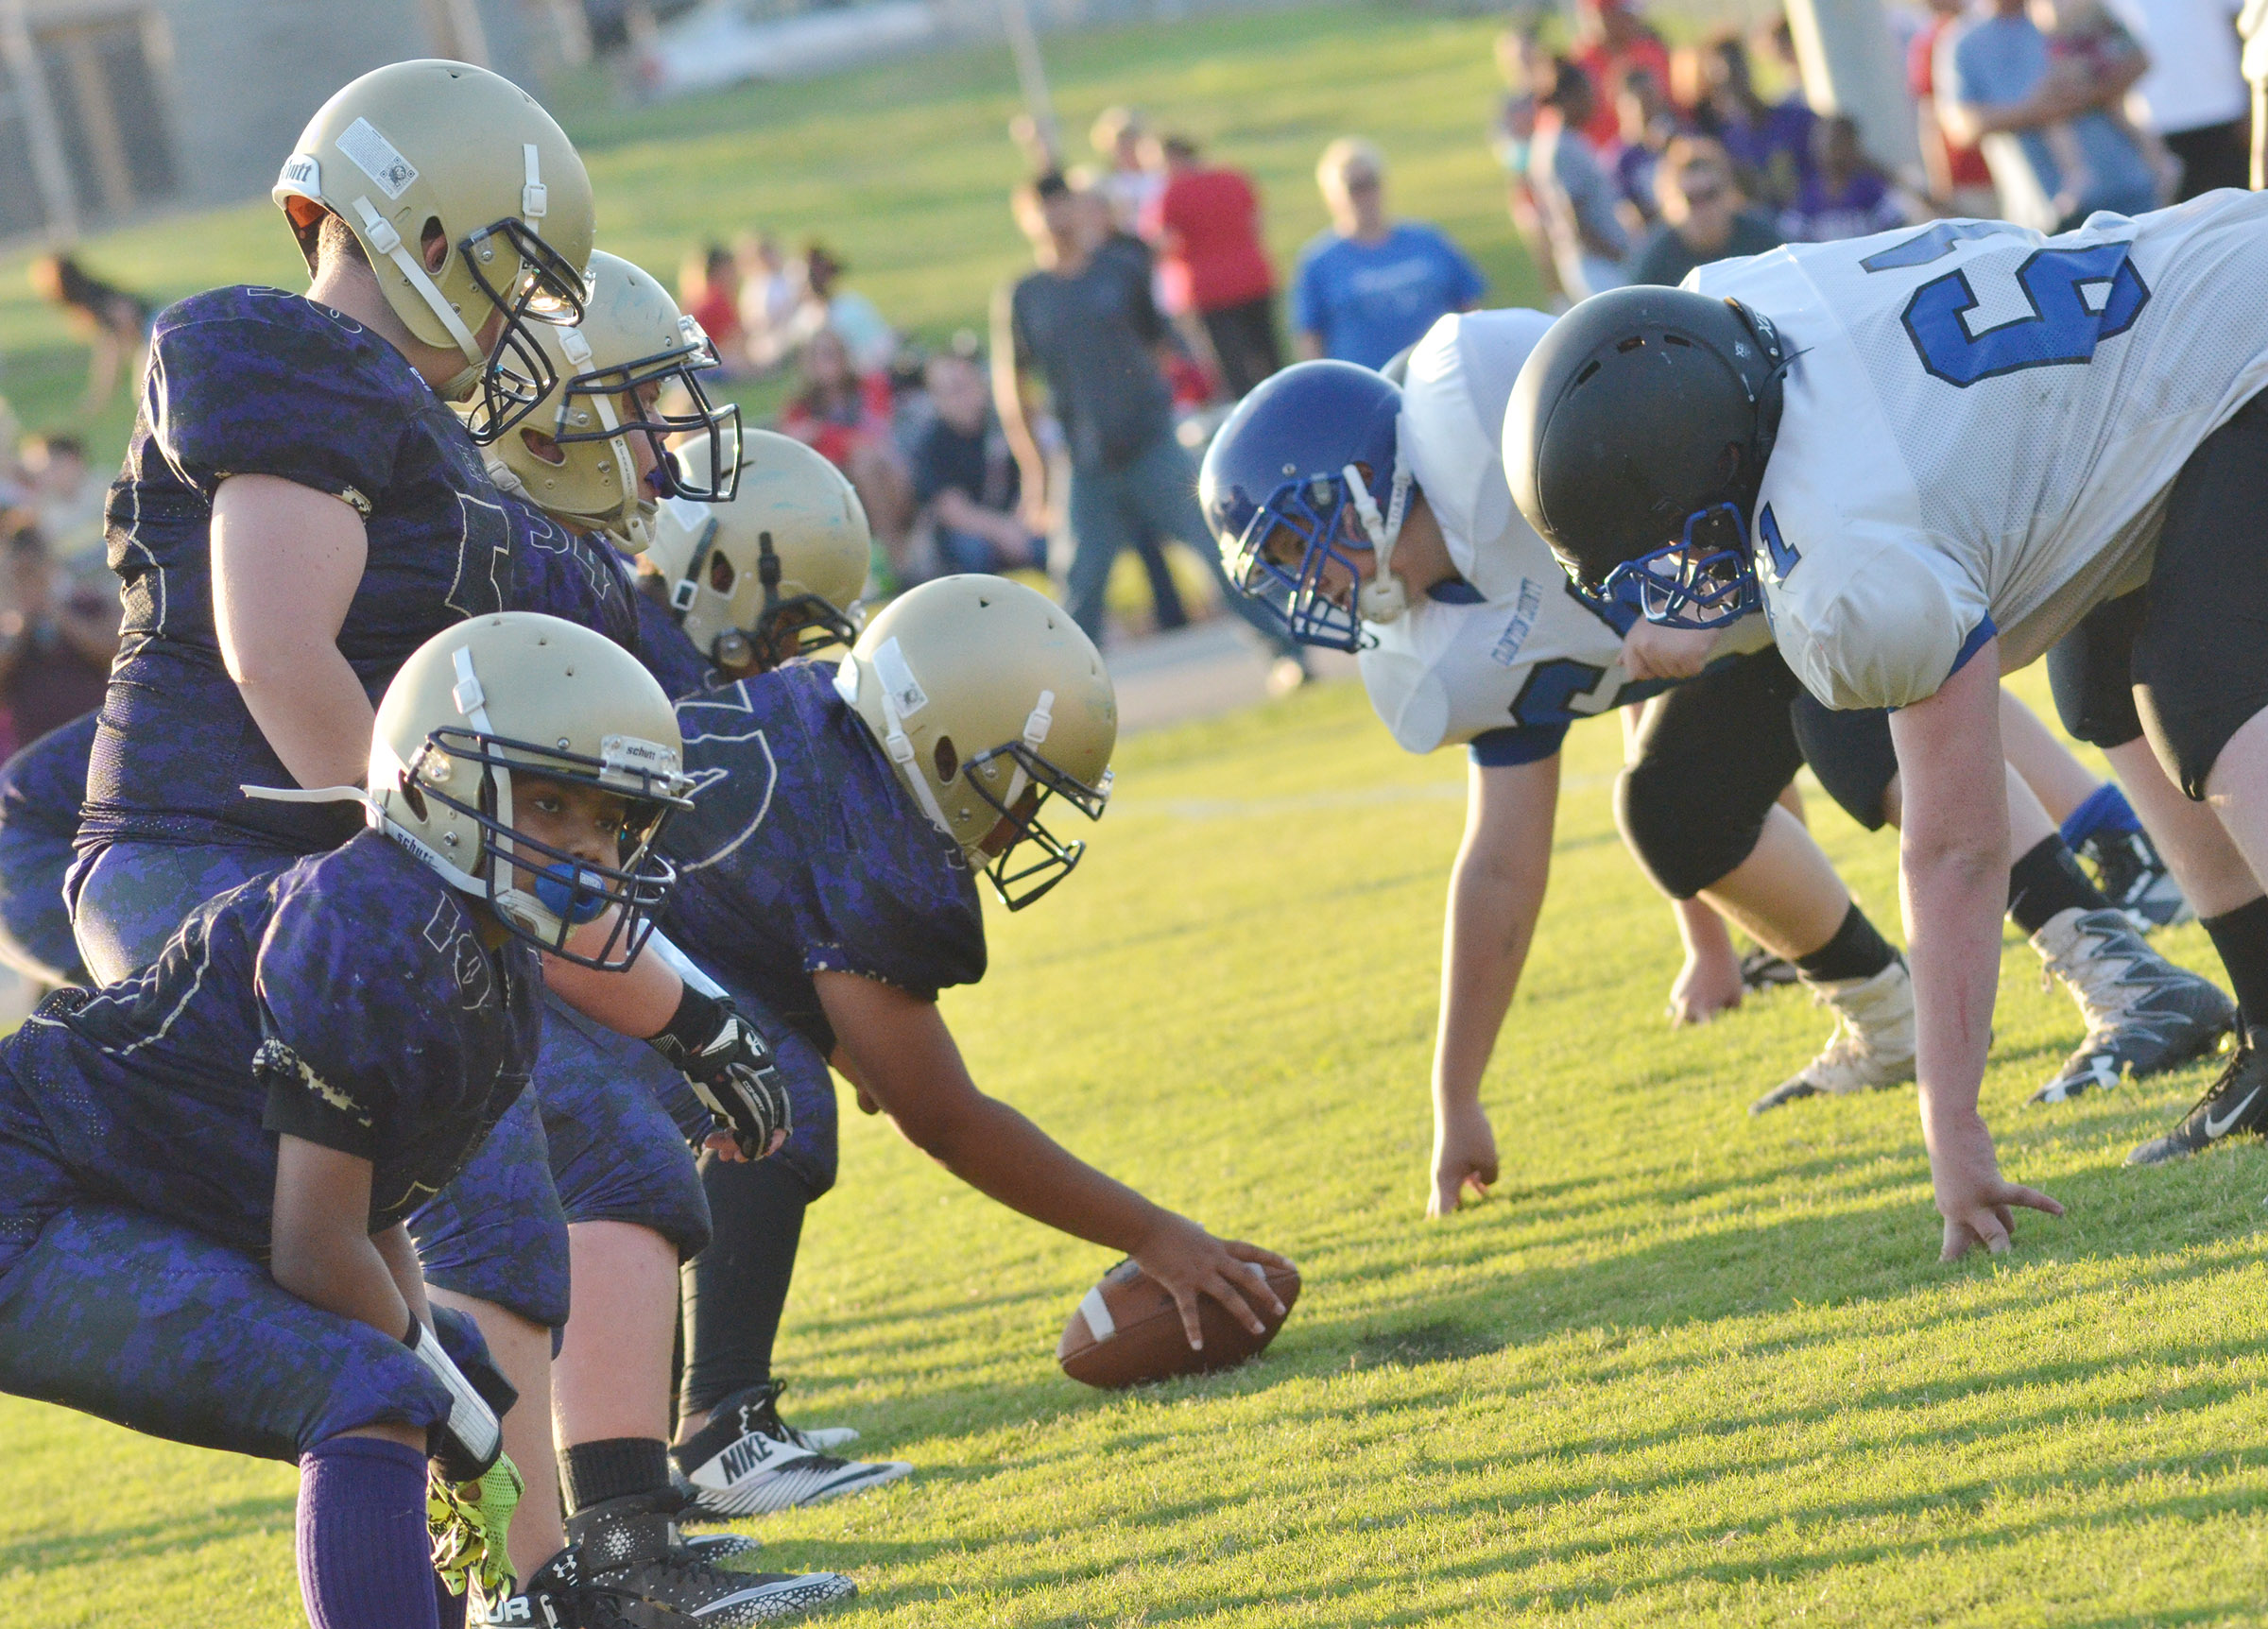 CMS offensive linemen get ready for the tackle.